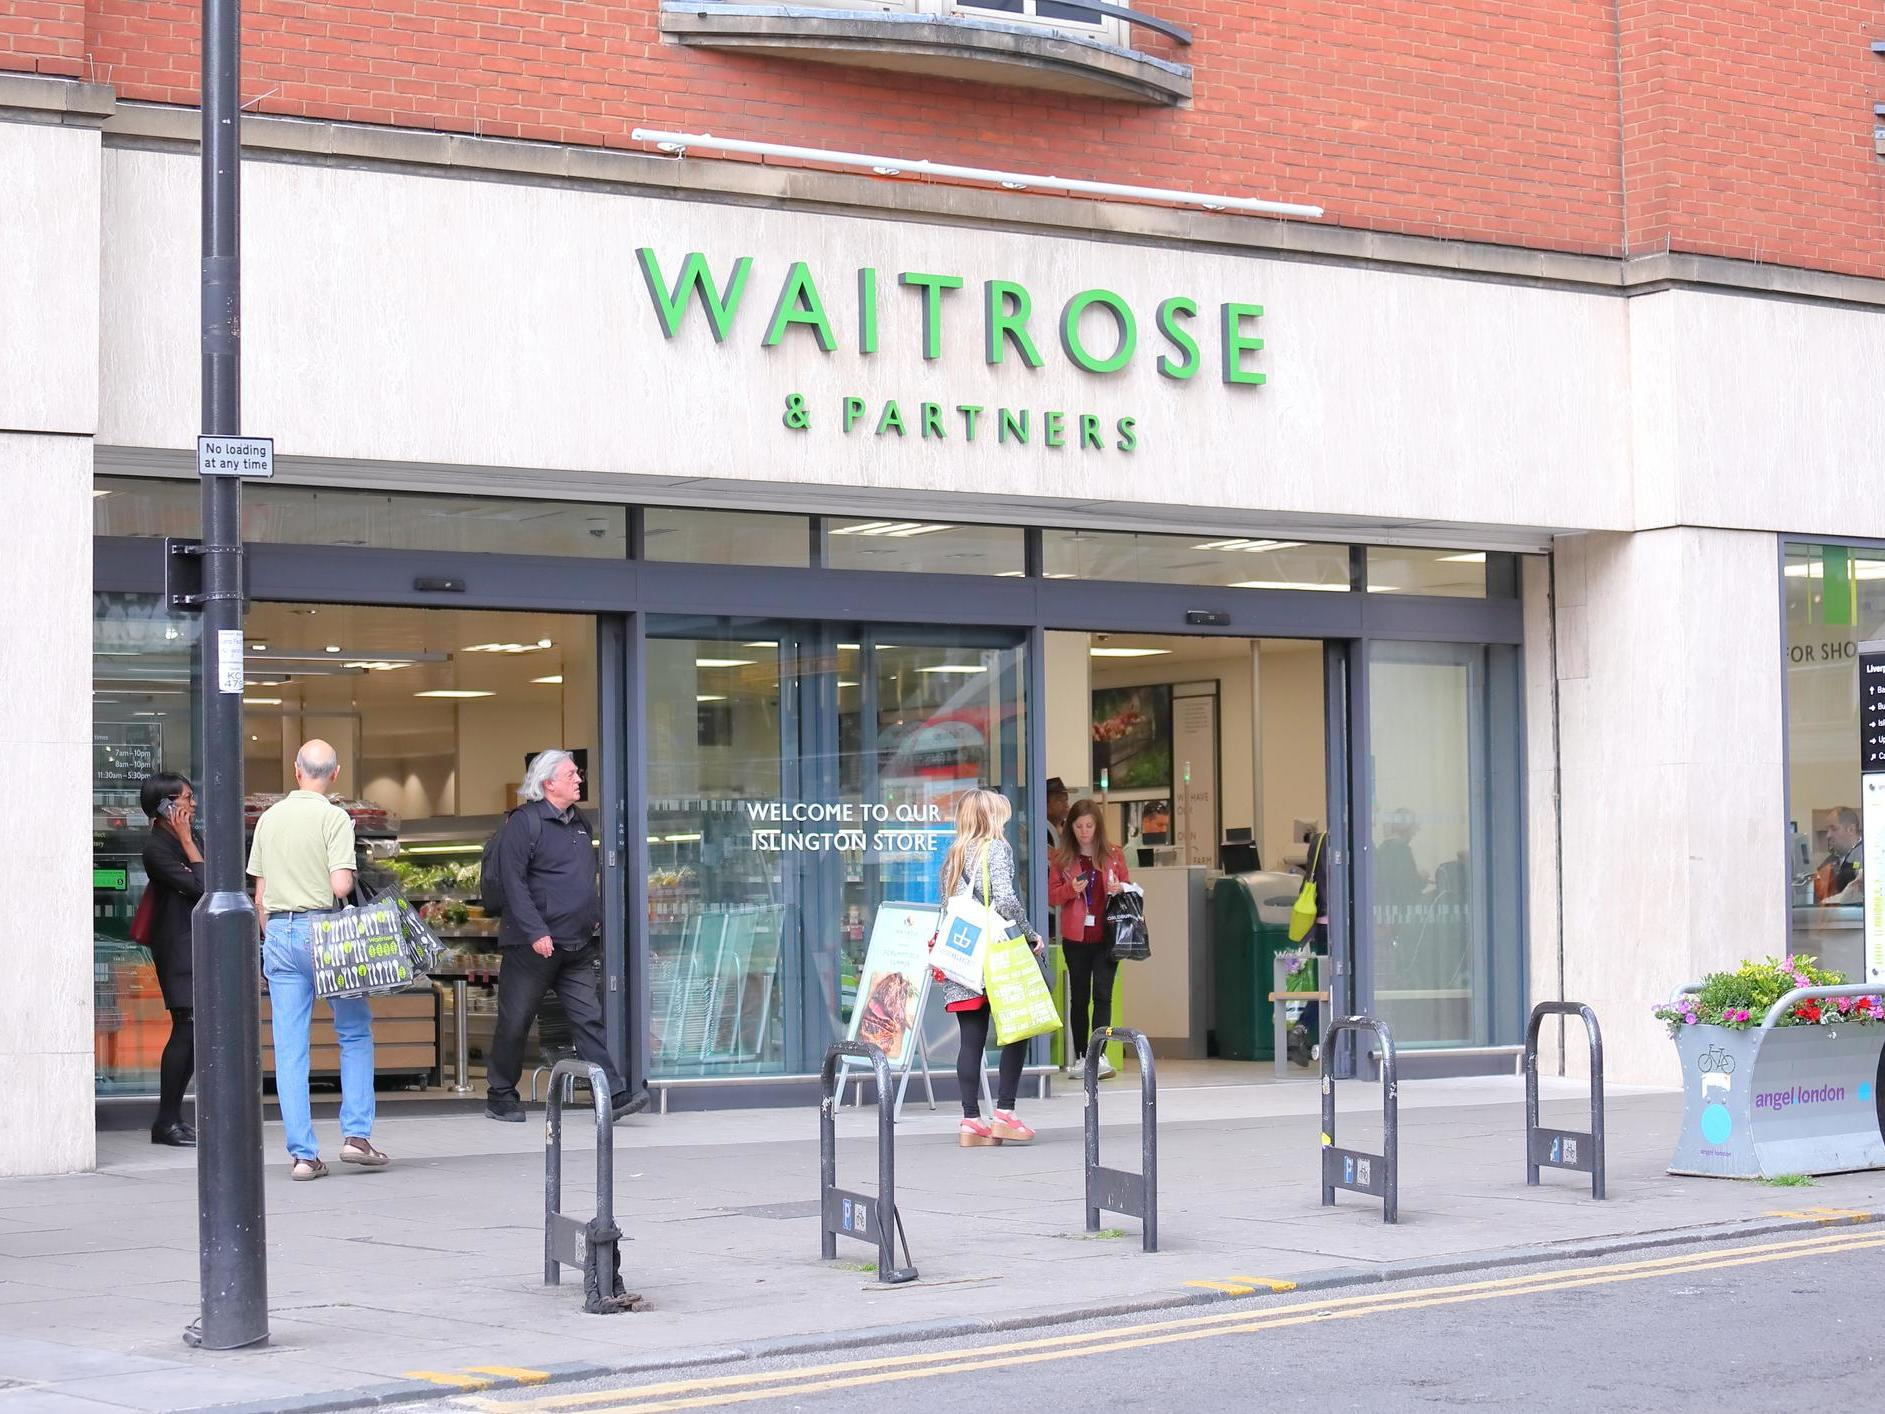 Coronavirus: Waitrose urges couples and families not to shop together to help stop spread of illness